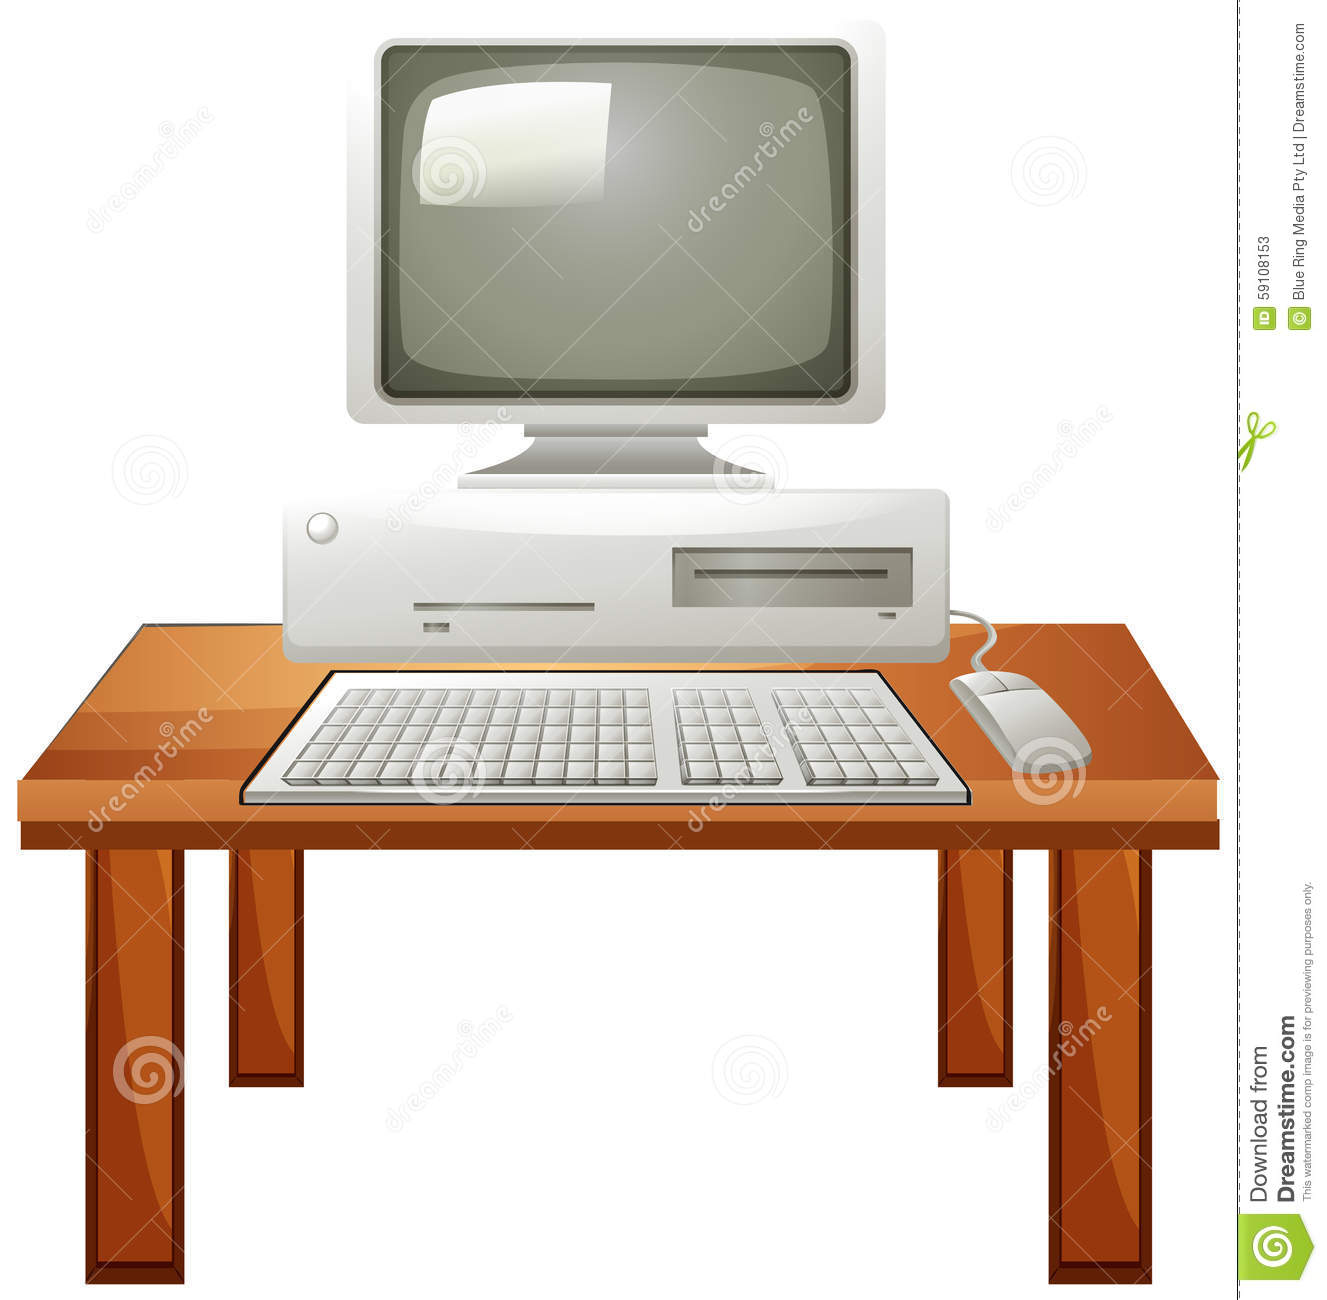 Computer set on the table  sc 1 st  Dreamstime.com & Computer set on the table stock vector. Illustration of mouse - 59108153